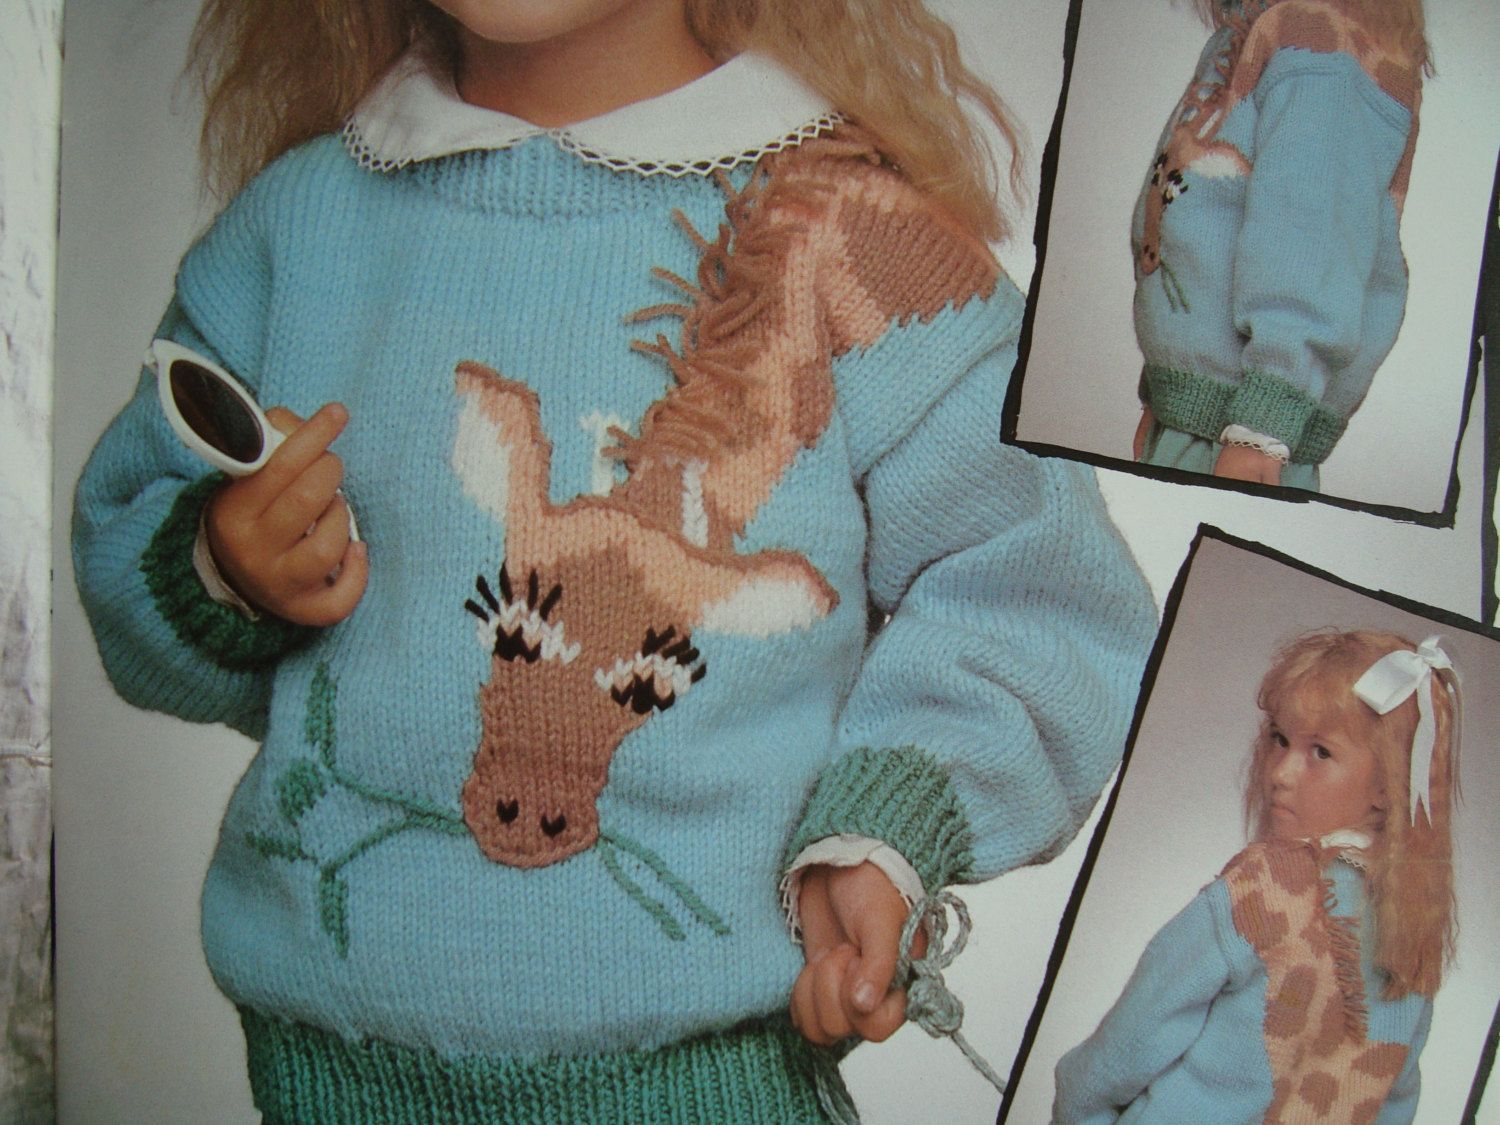 Animal sweater knitting patterns patons 520 on safari childs animal sweater knitting patterns patons 520 on safari childs size drop shoulder pullover zebra hippo giraffe lion monkey elephant by redwickerbasket on bankloansurffo Images